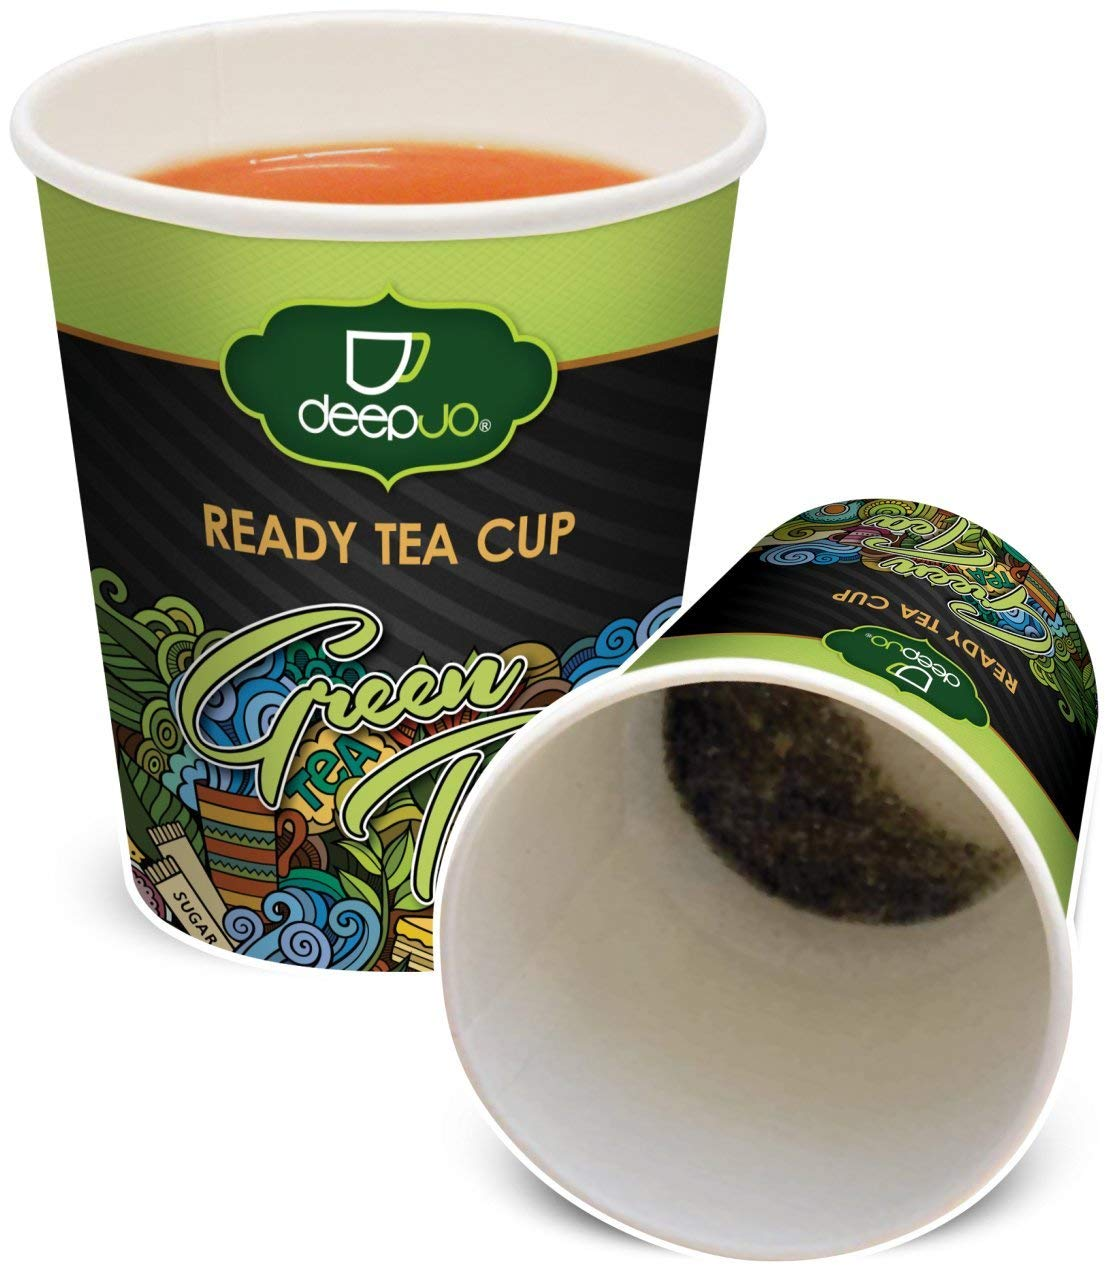 Green Tea Ready Tea Cups - 10 Disposable Paper Cups with a Single Serving of Flavorful Tea Secured at the Bottom of Each Cup - YOU'LL LOVE THE TASTE AND CONVENIENCE